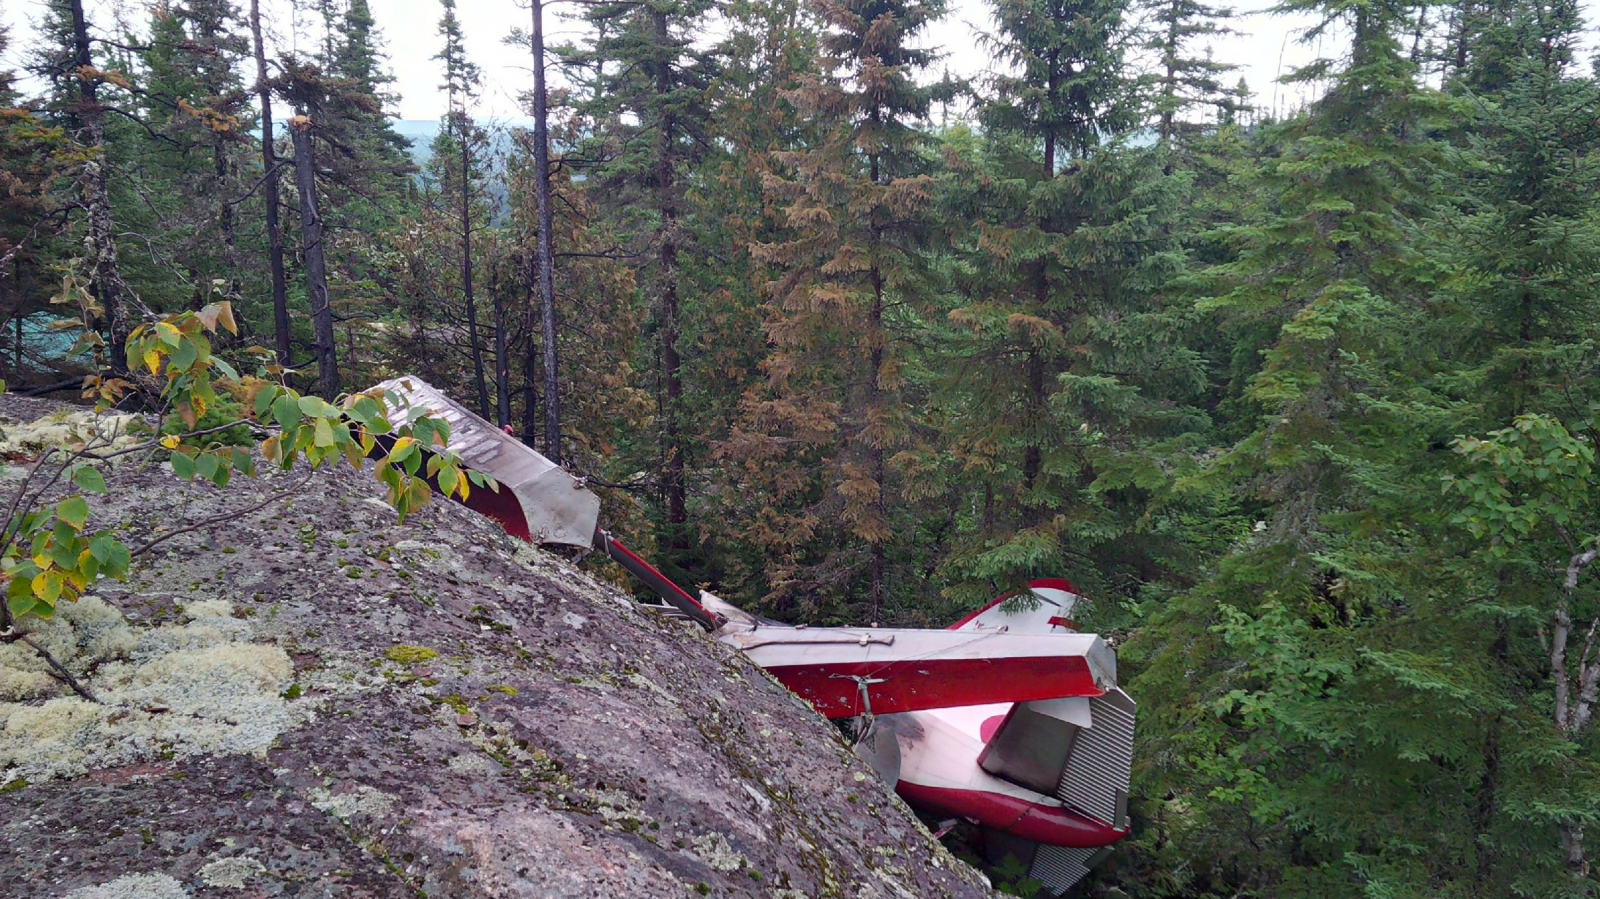 Beaver plane crash site